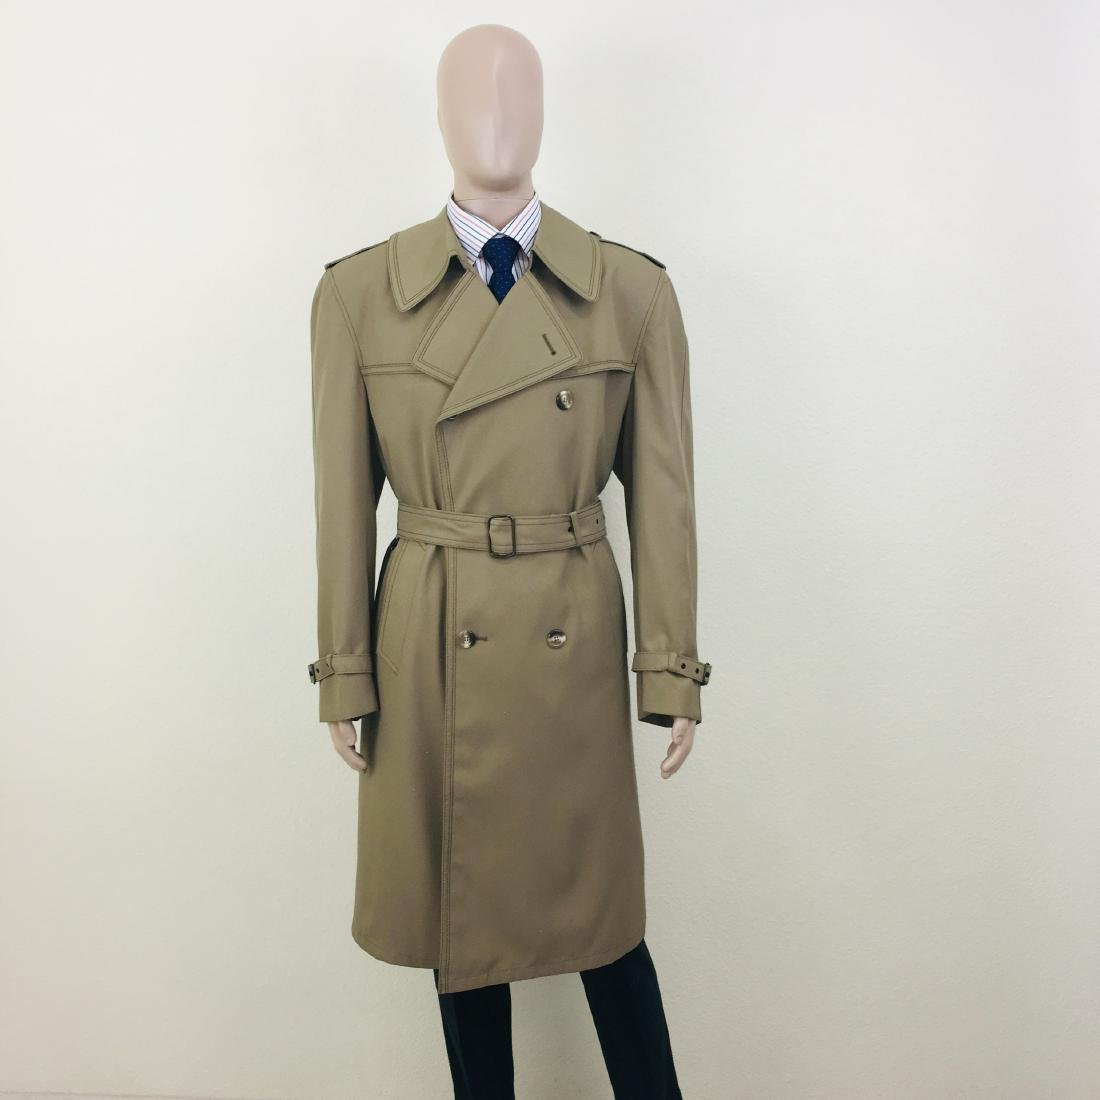 Vintage Men's Dress Boraj High Quality Trench Coat